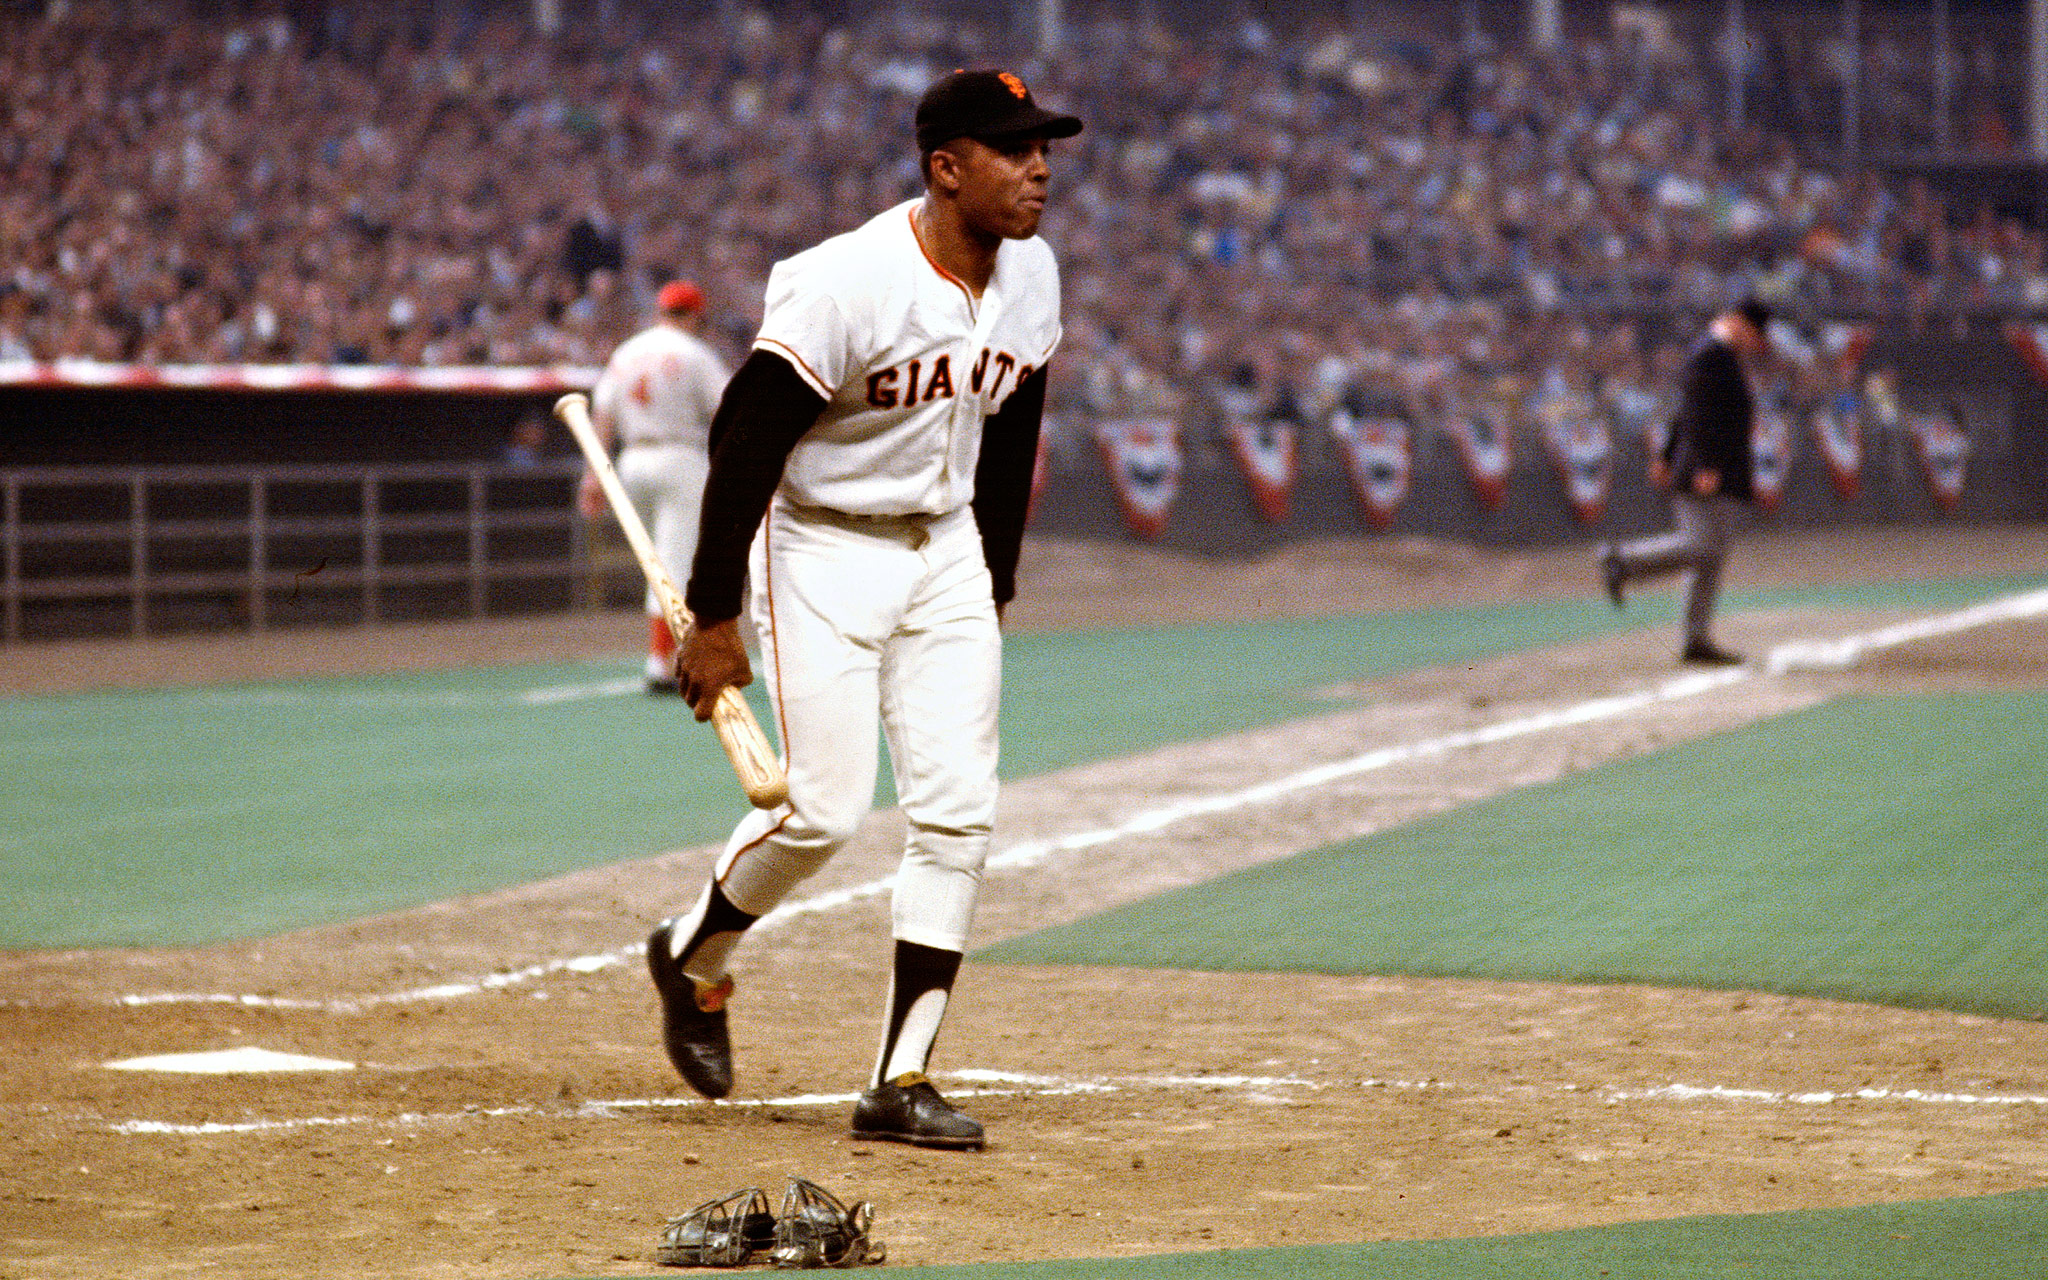 OF: Willie Mays